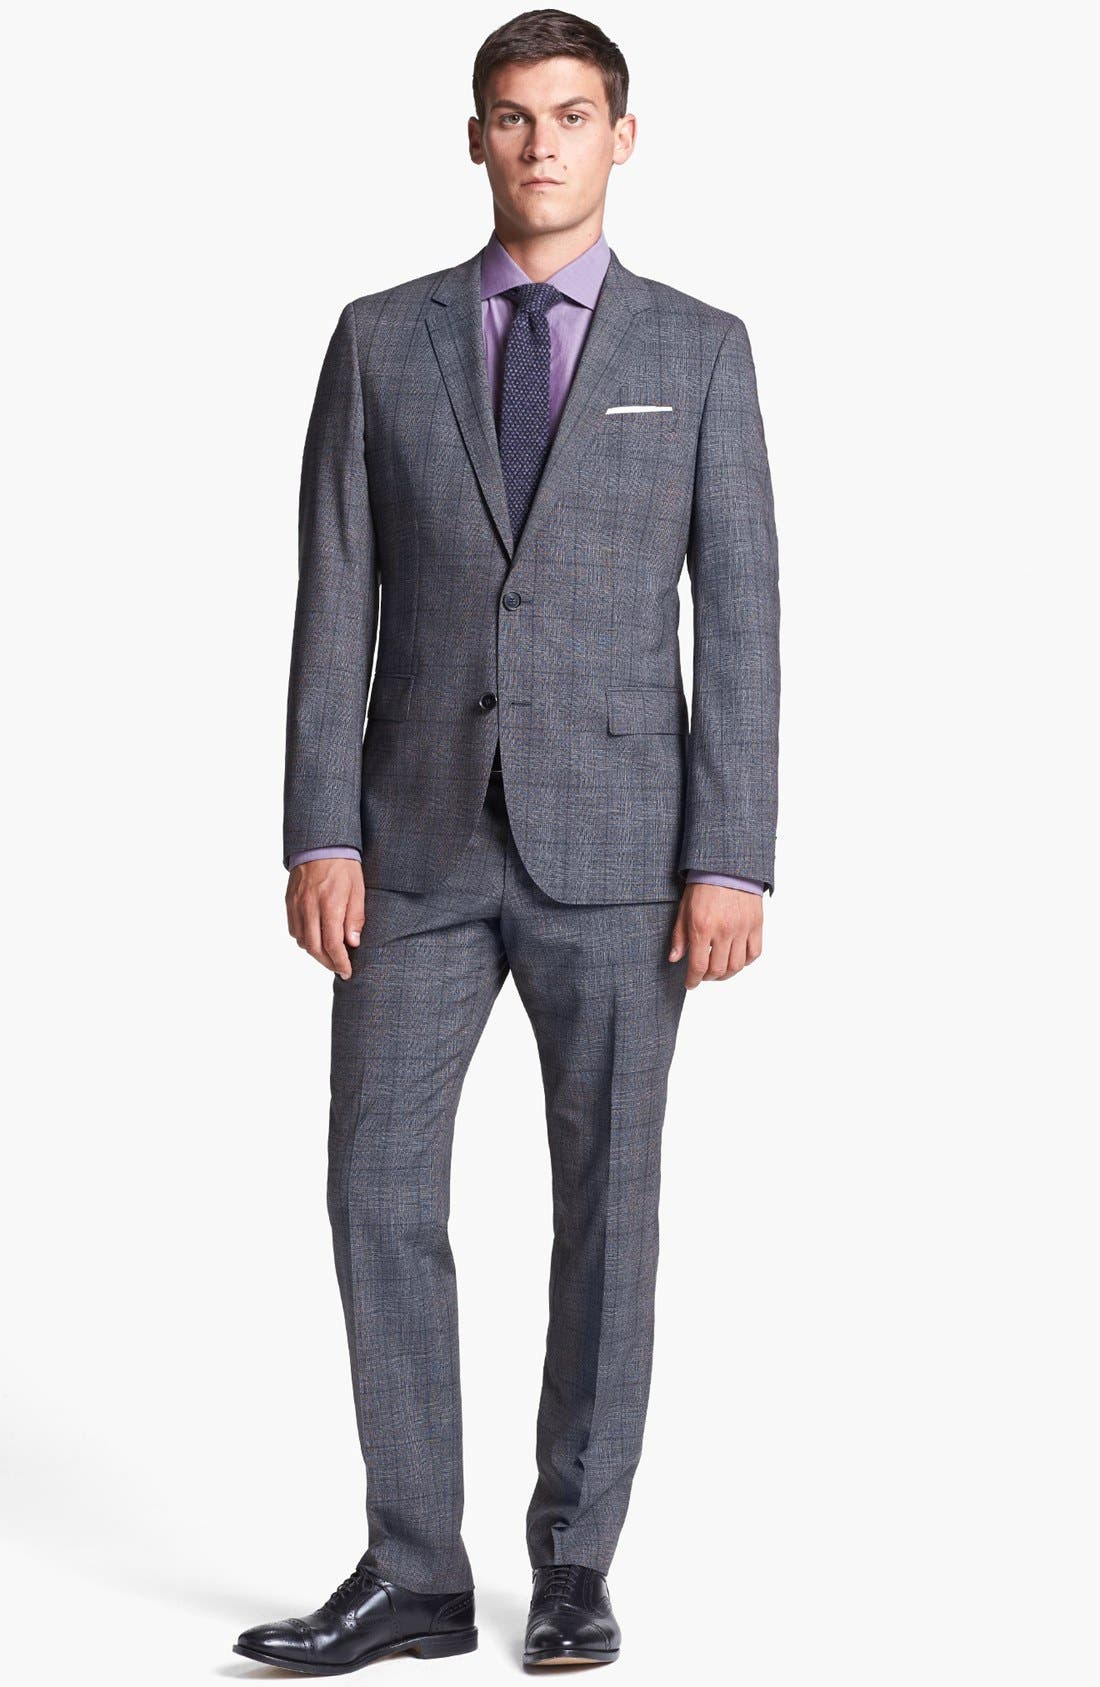 Alternate Image 1 Selected - BOSS HUGO BOSS 'Huge/Genius' Trim Fit Plaid Suit